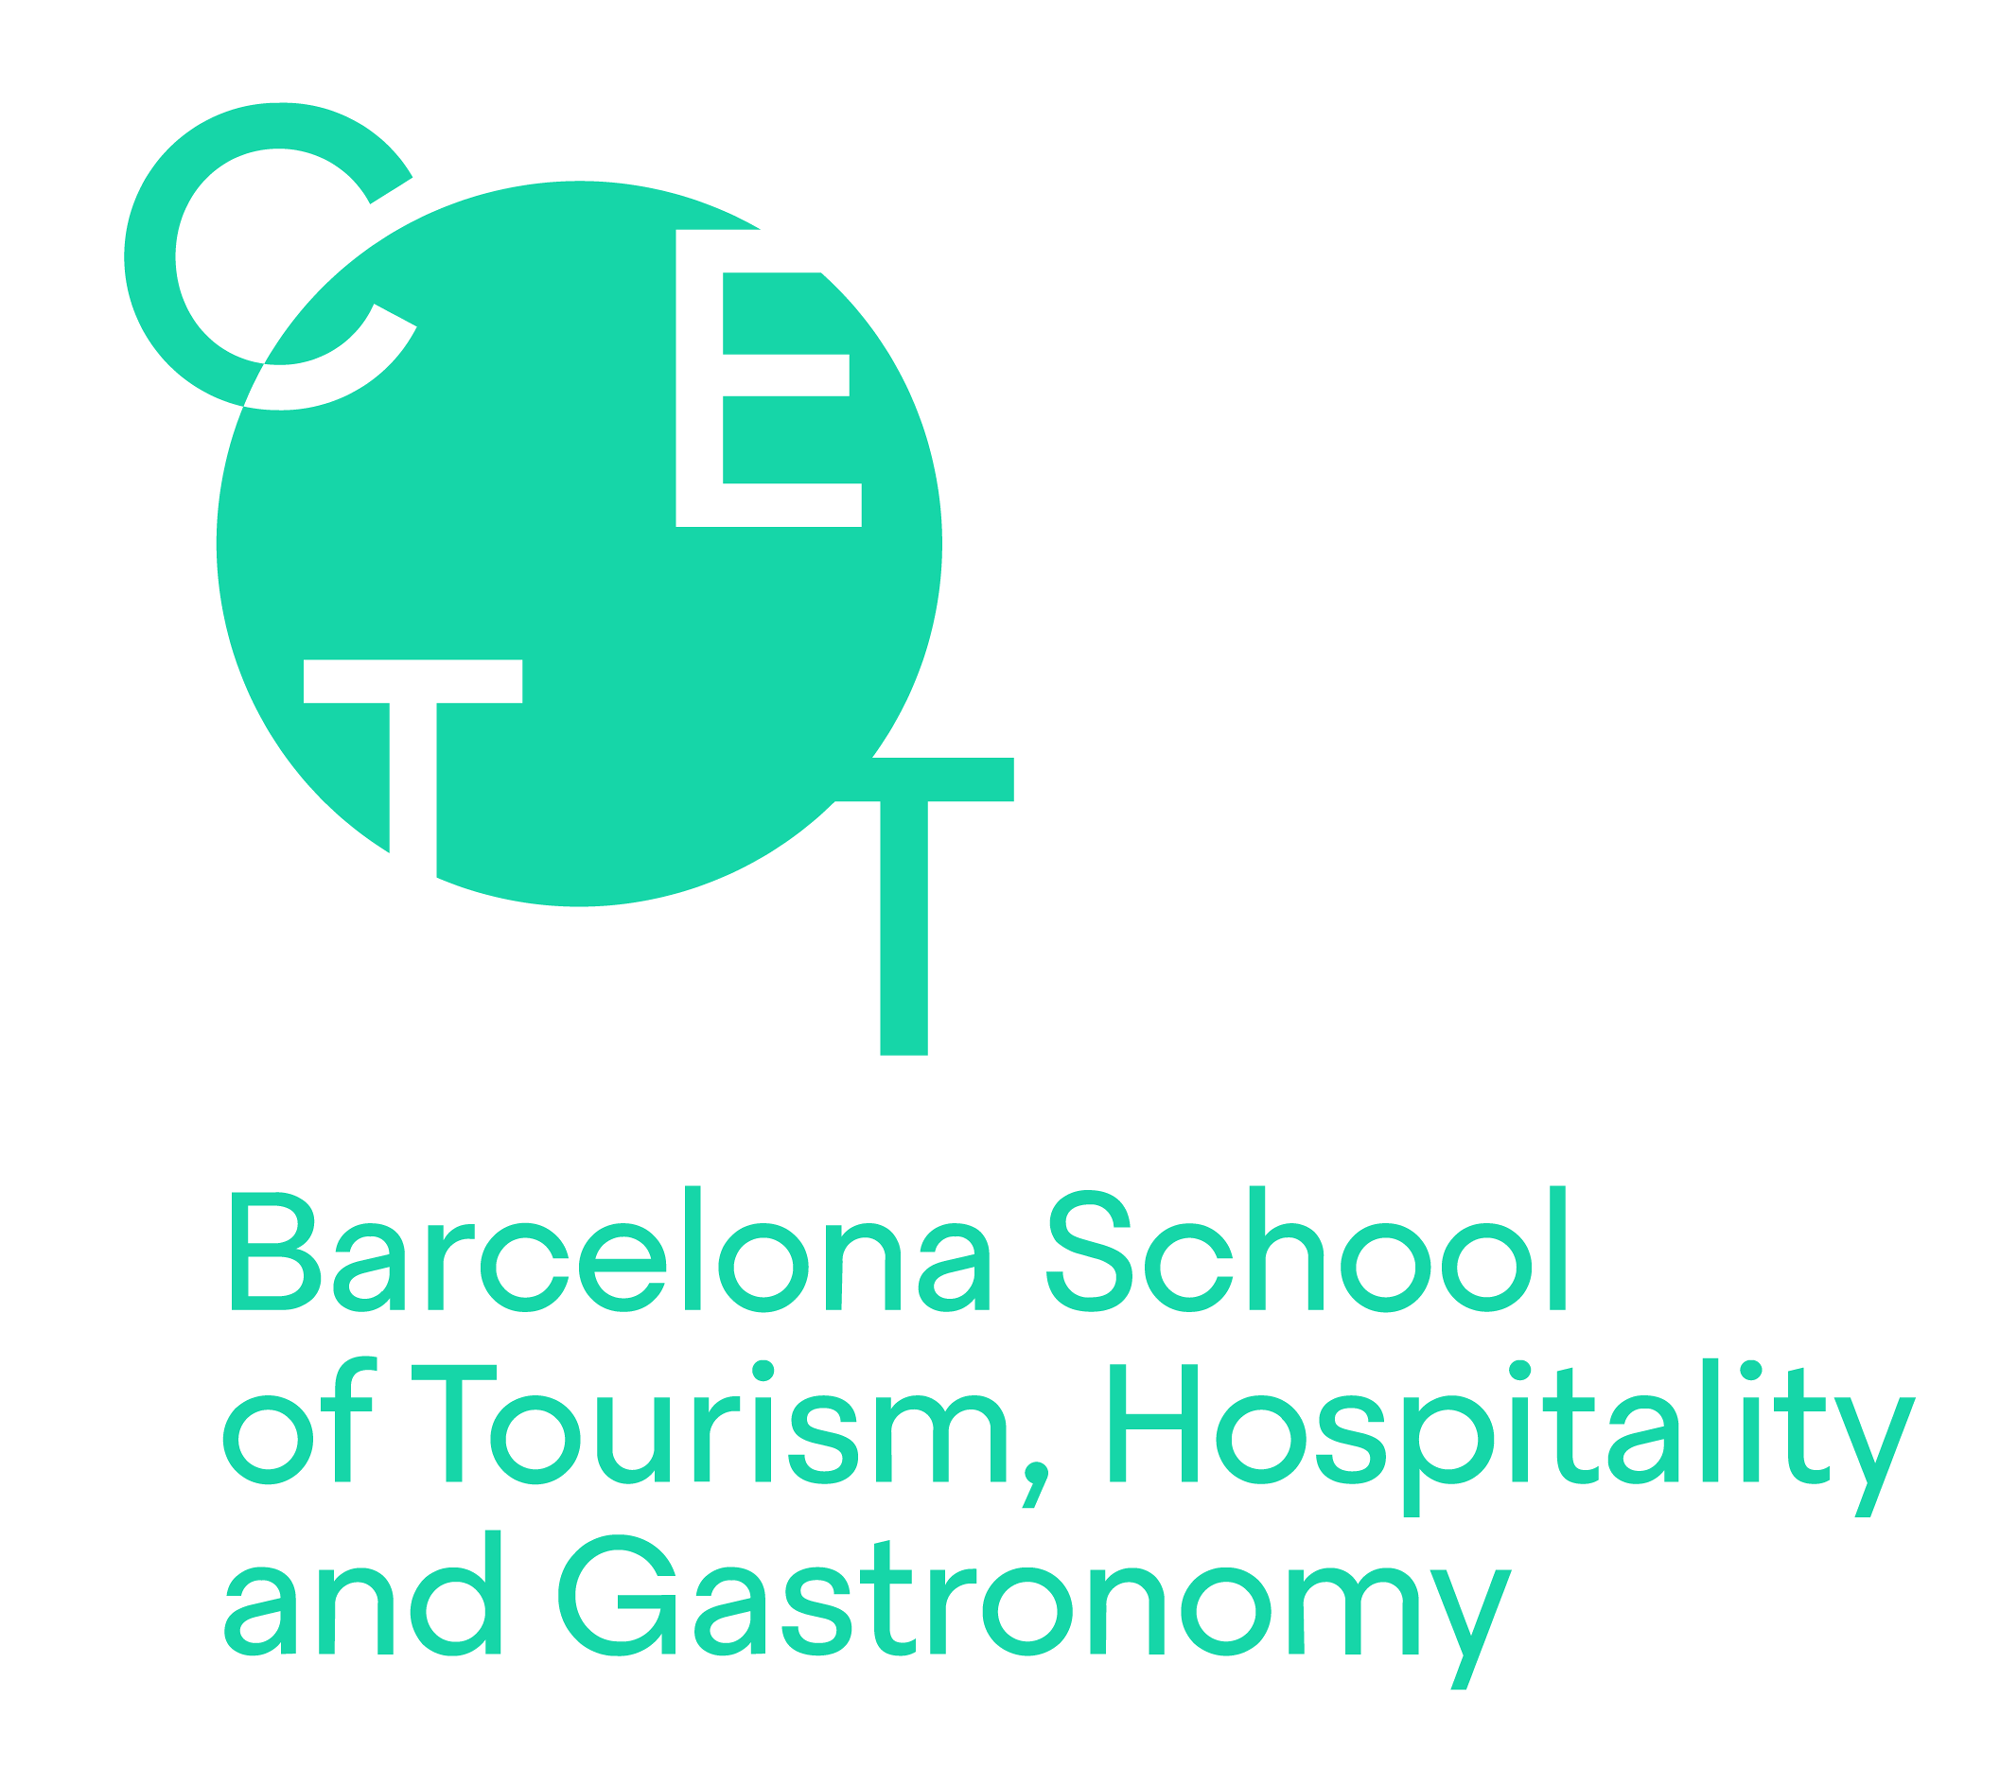 New Logo and Identity for CETT by Mucho